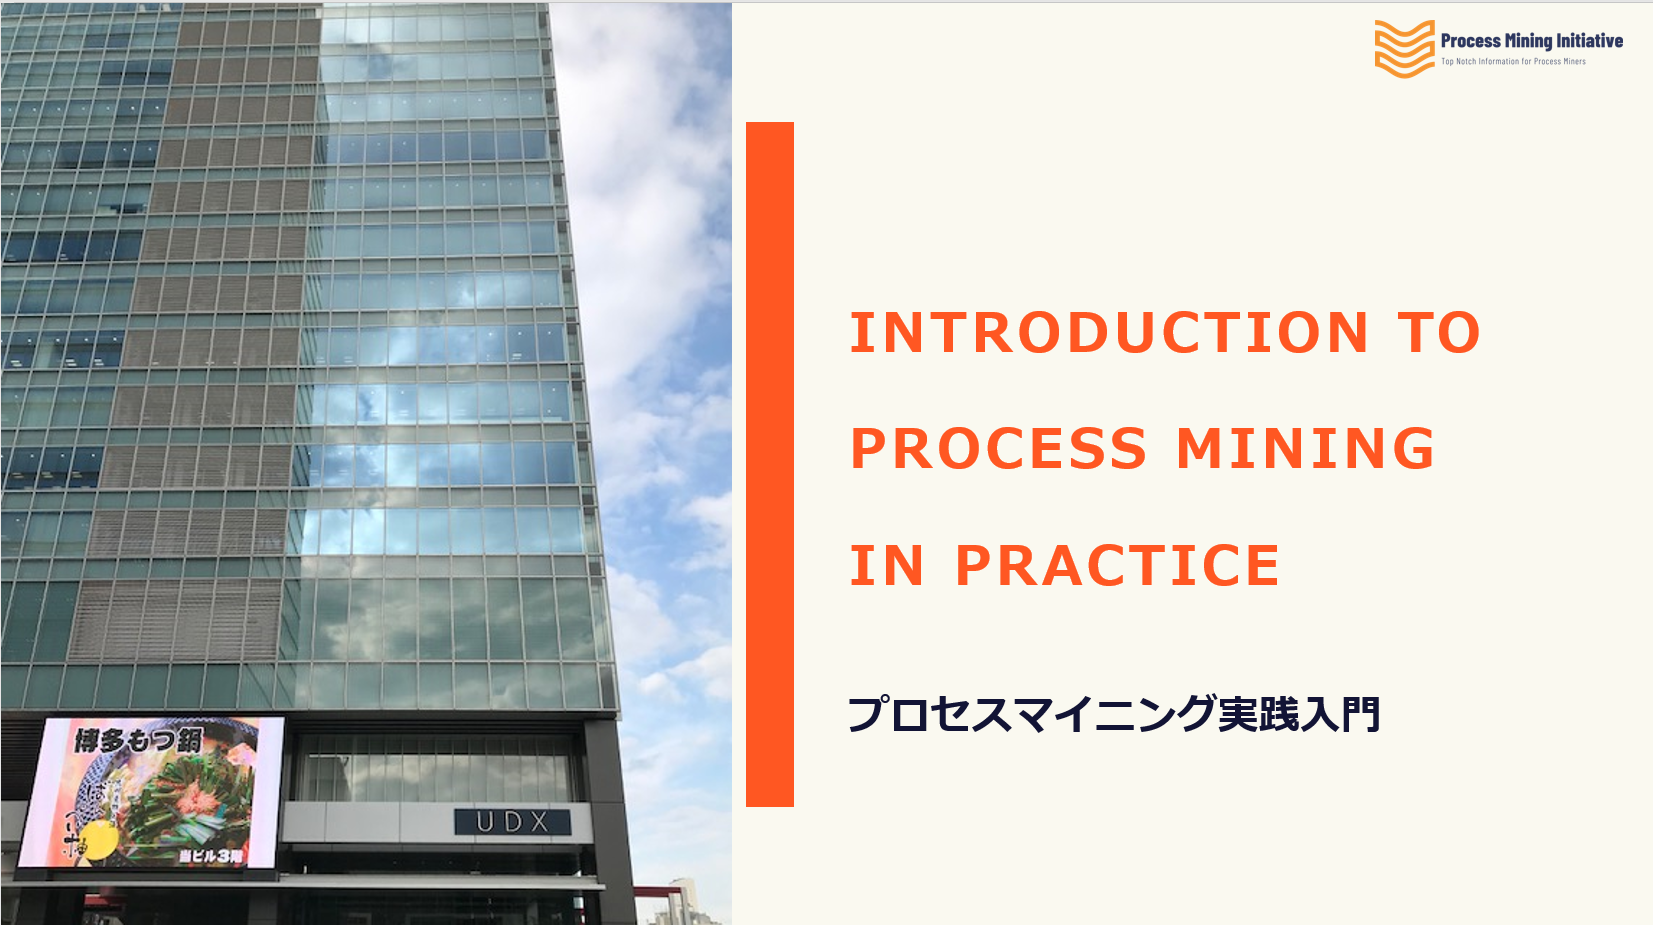 introduction to process mining in practice udemy